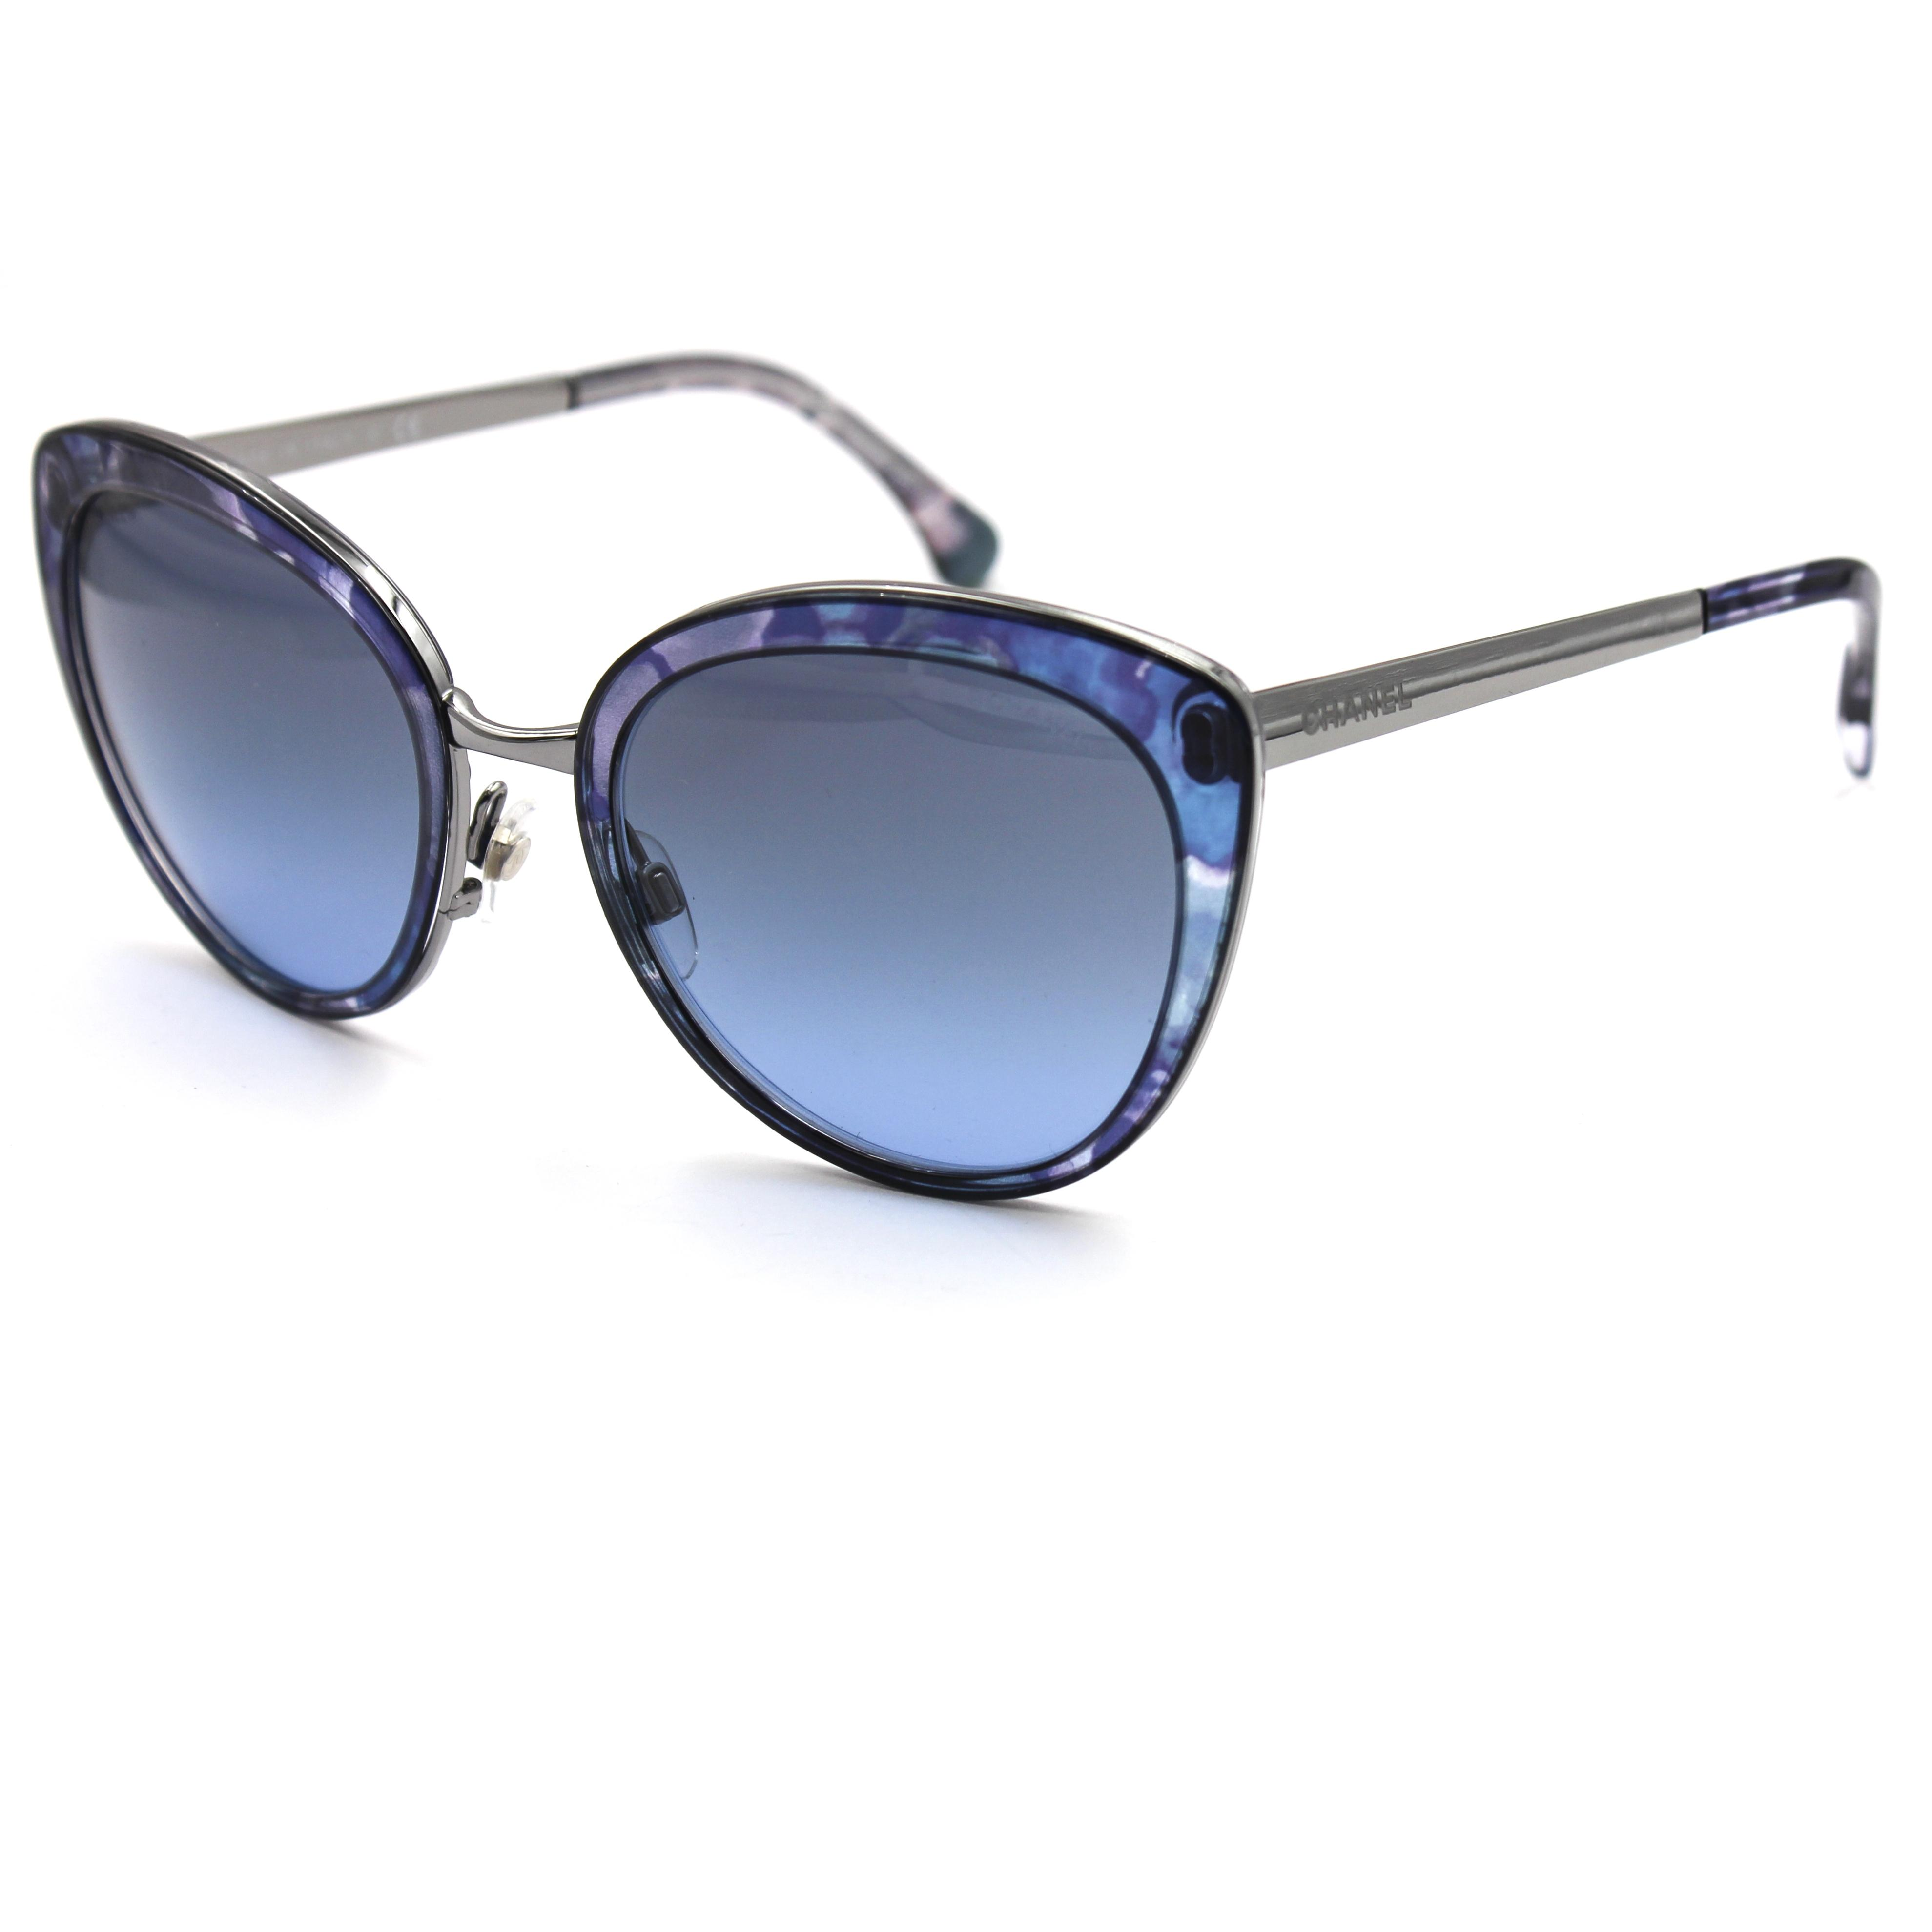 e1c912917bb Chanel Blue 4208 Flower Frame With Gradient Lenses Sunglasses Tradesy